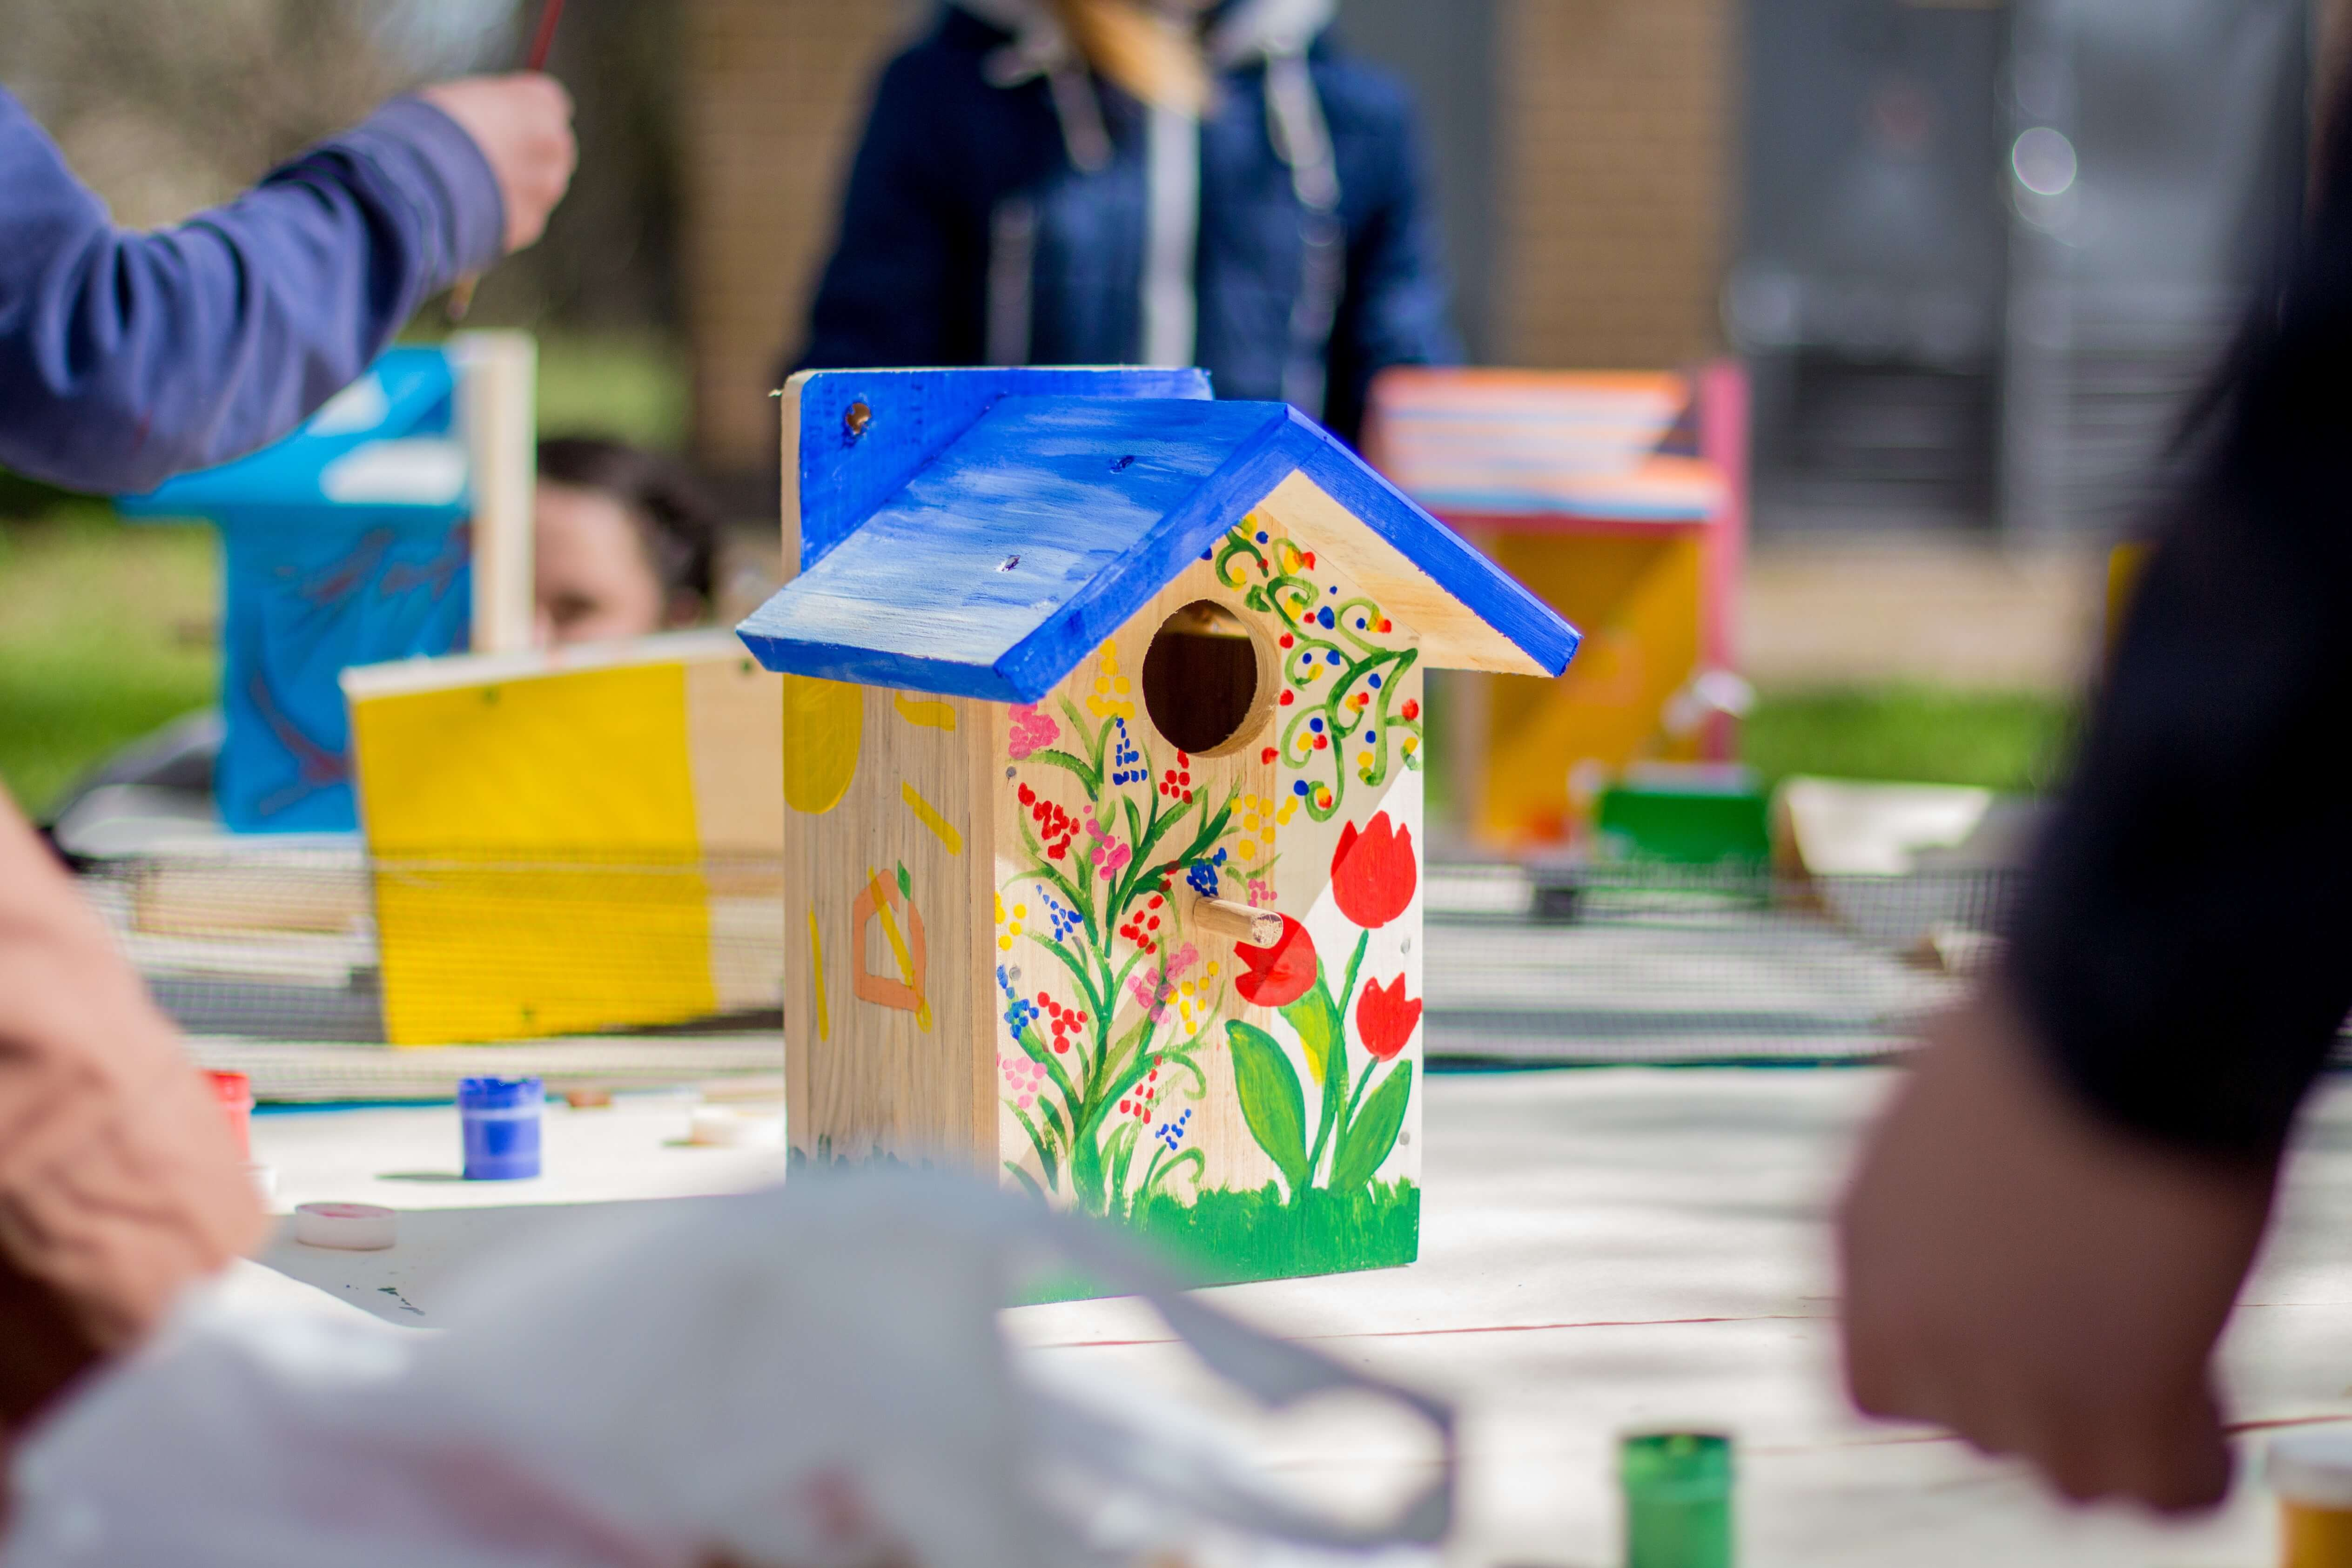 Build birdhouses out of wood or any other natural materials you can find to give small animals a home before summer arrives.